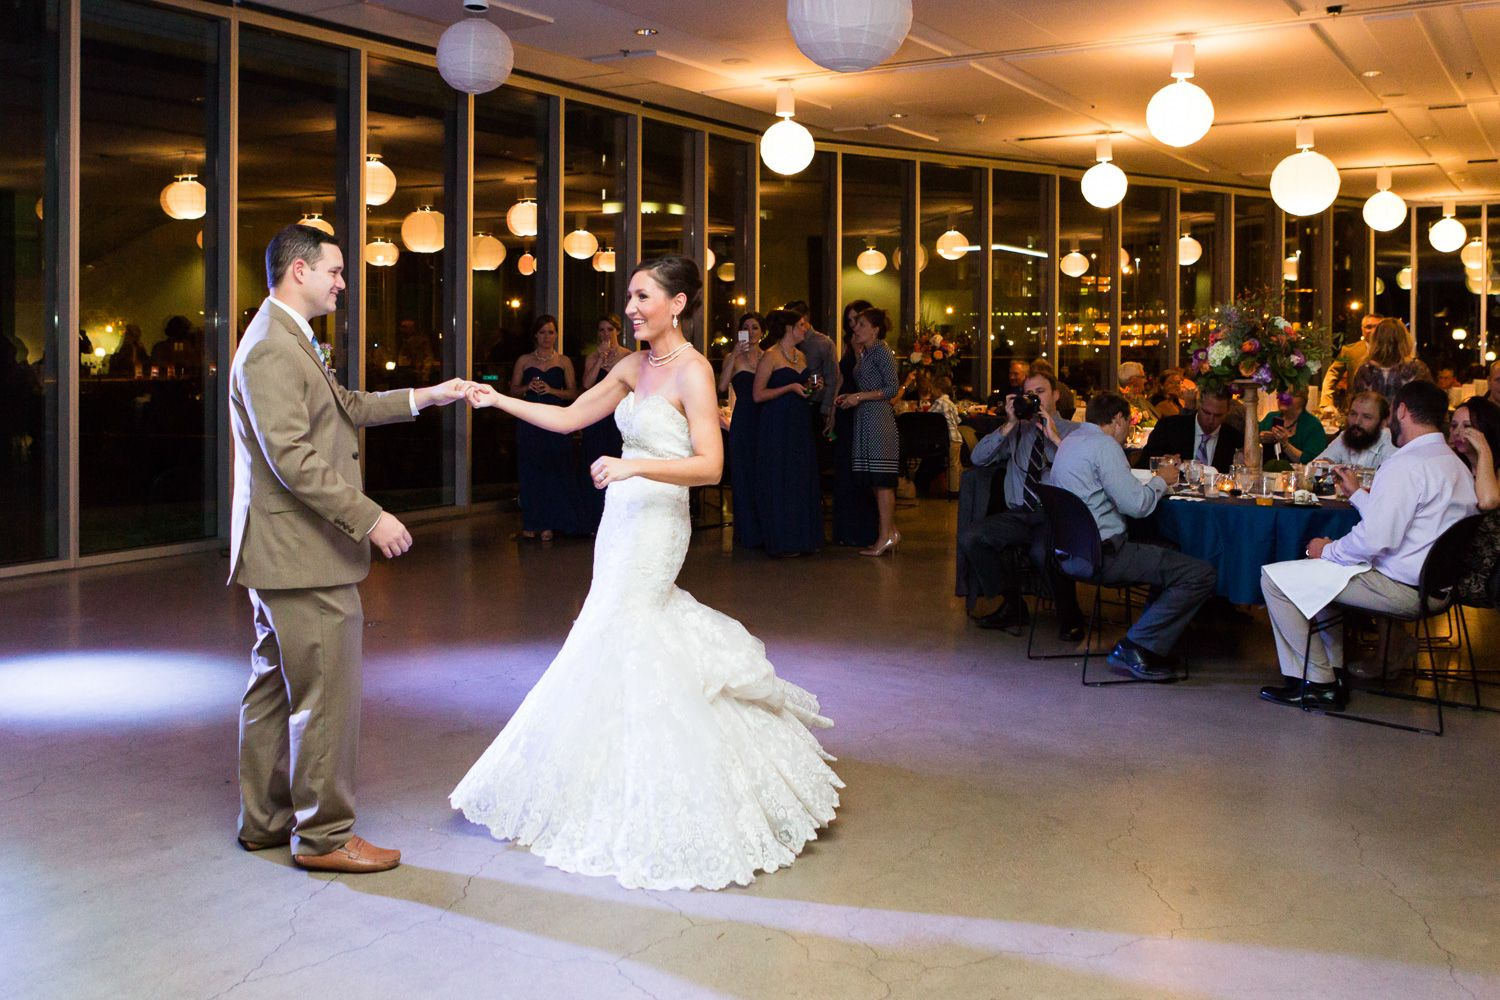 The couple's first dance as husband and wife. The